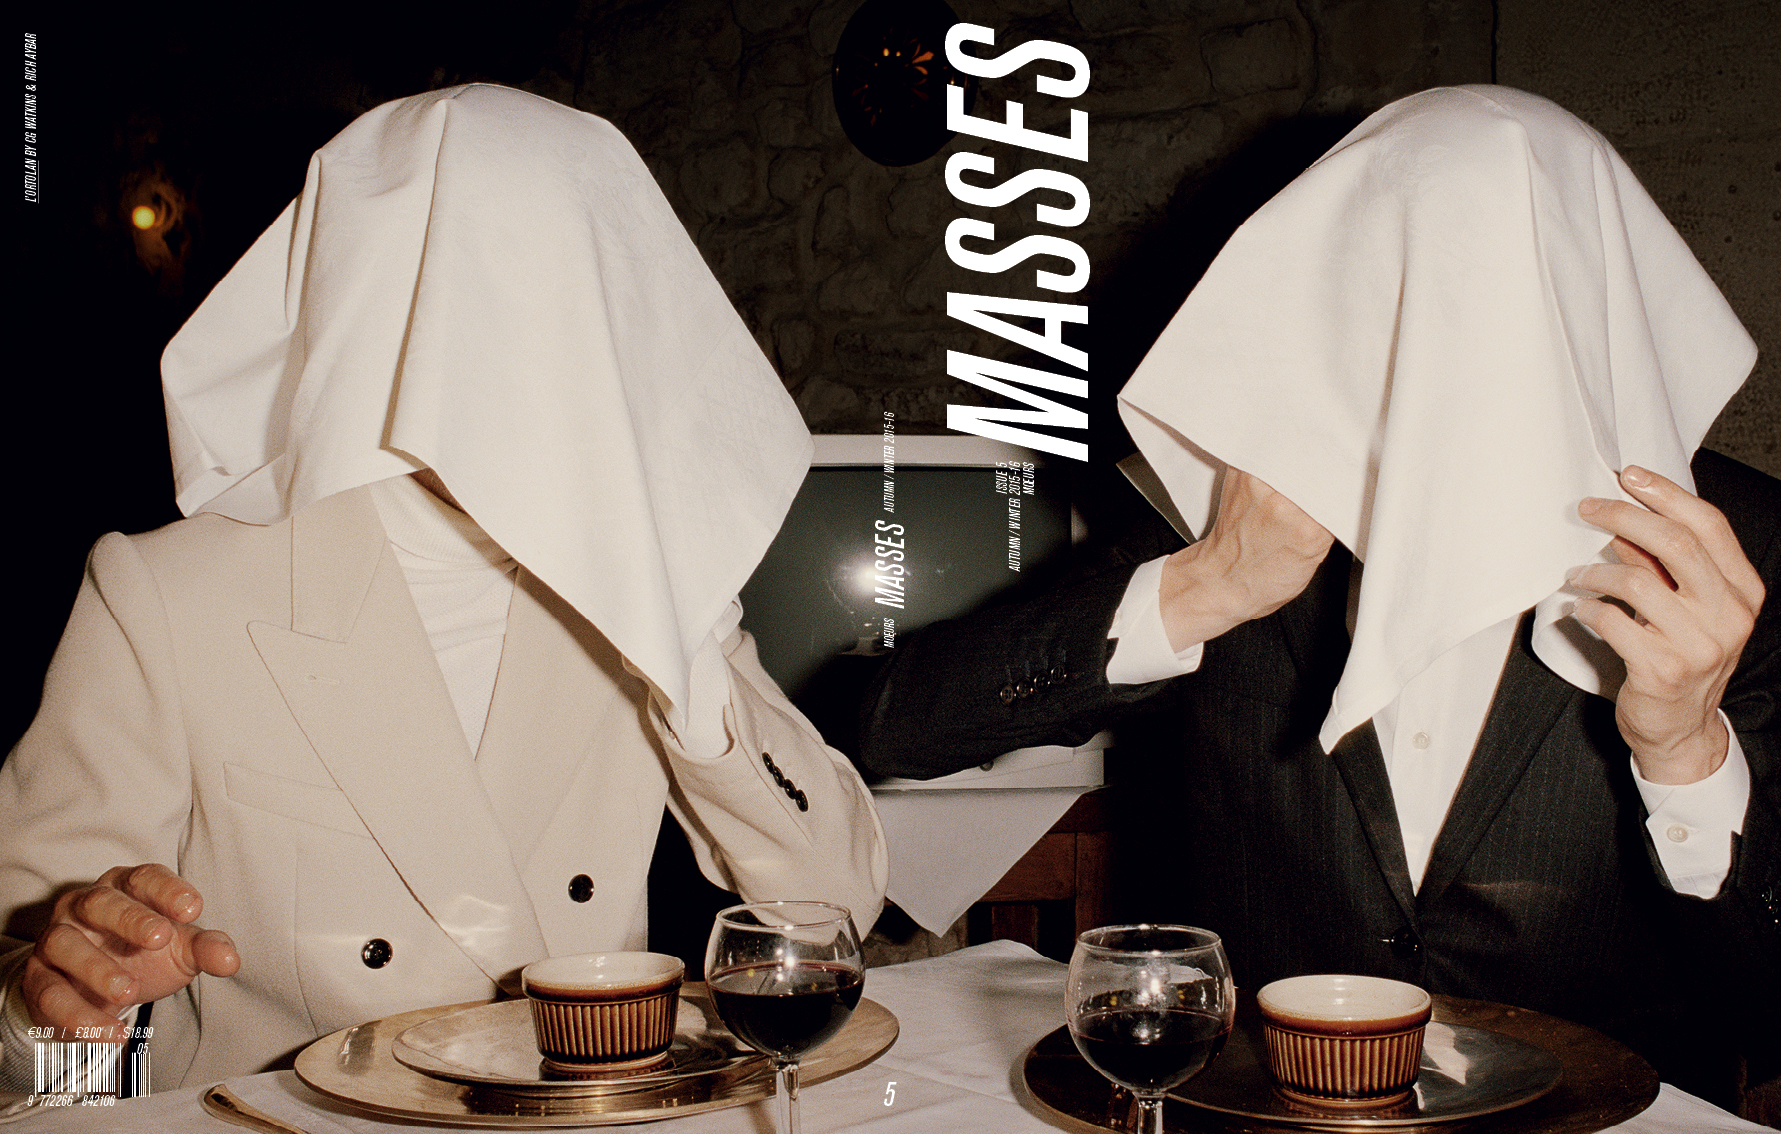 MASSES MAGAZINE ISSUE 5 COVER – L'ORTOLAN, ERIC DIULEIN AND SACHA QUINTIN BY CG WATKINS, FASHION BY RICH AYBAR, FEATURING ERIC DIULEIN